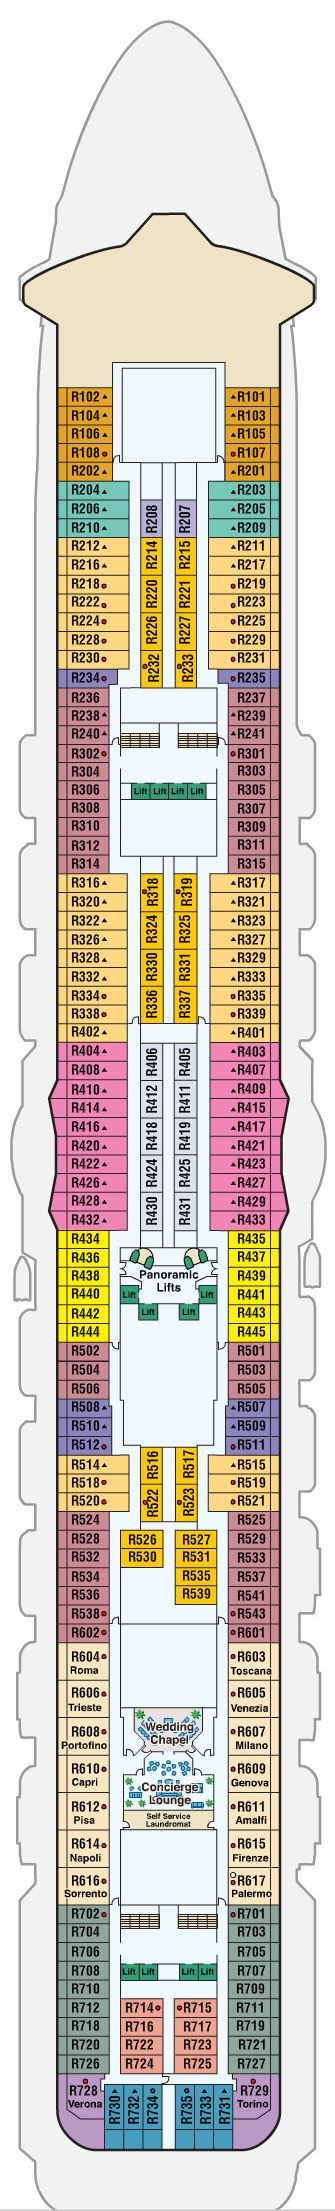 Royal Princess Deck 14 - Riviera layout